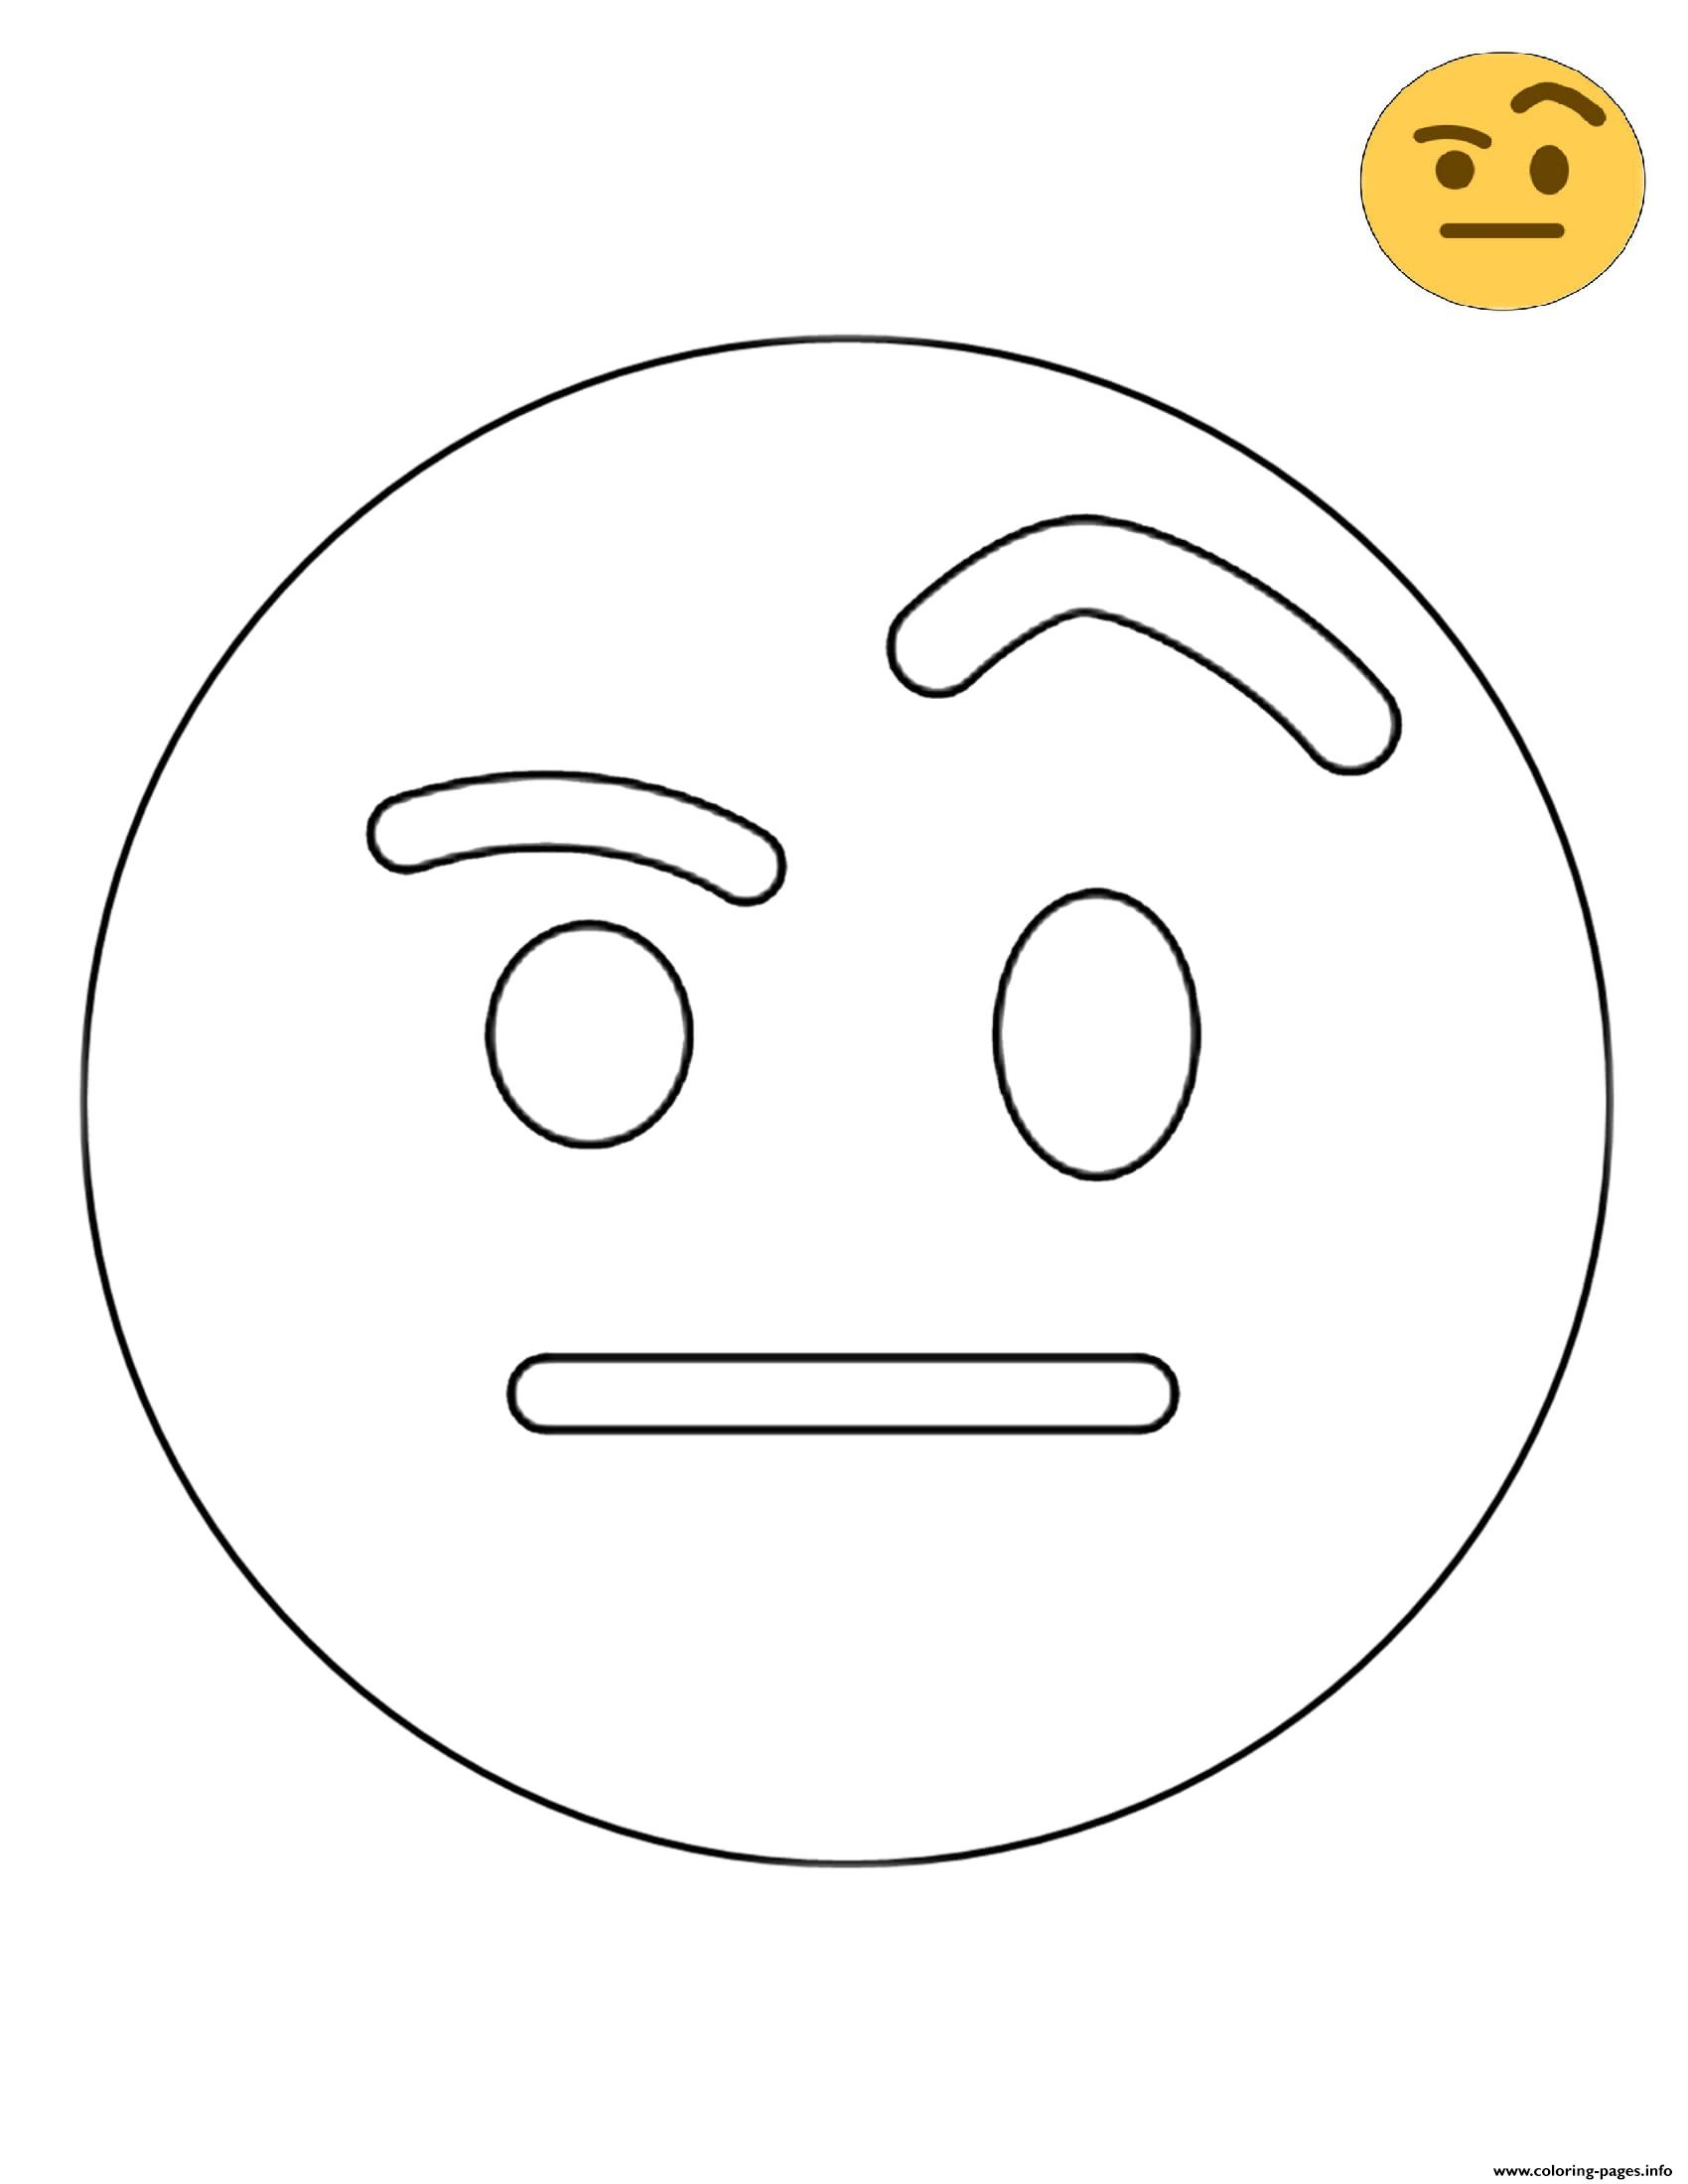 Twitter Raised Eyebrow Emoji coloring pages